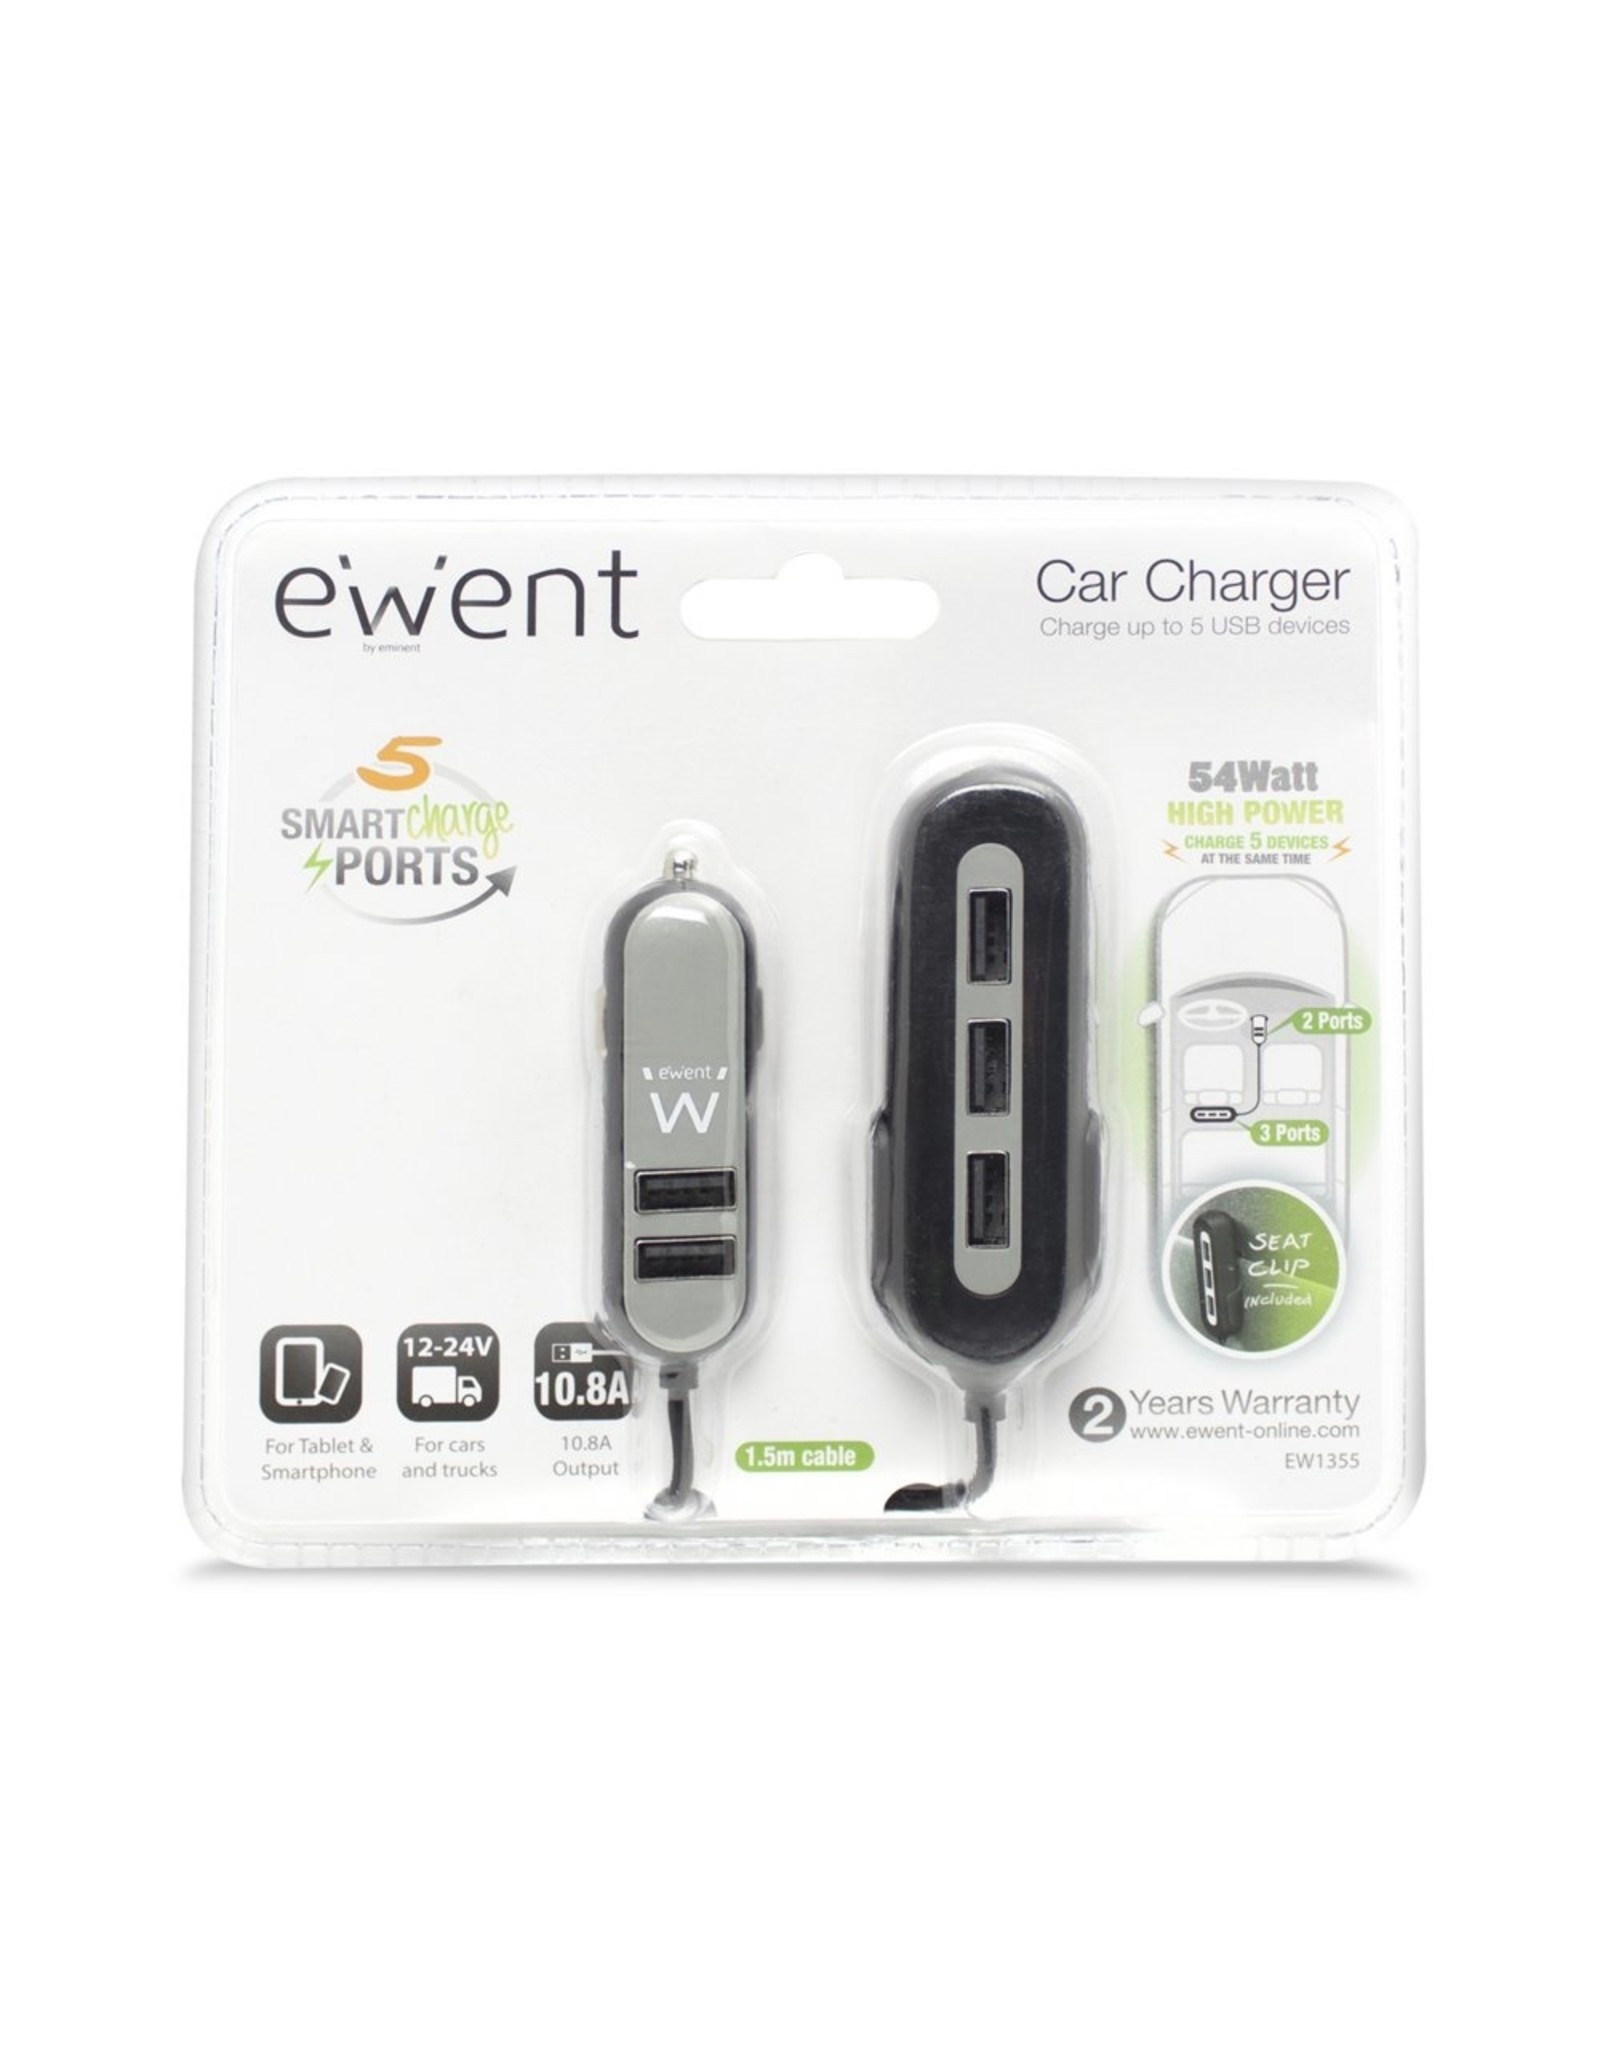 Ewent USB Car Charger two + three port 10.8A